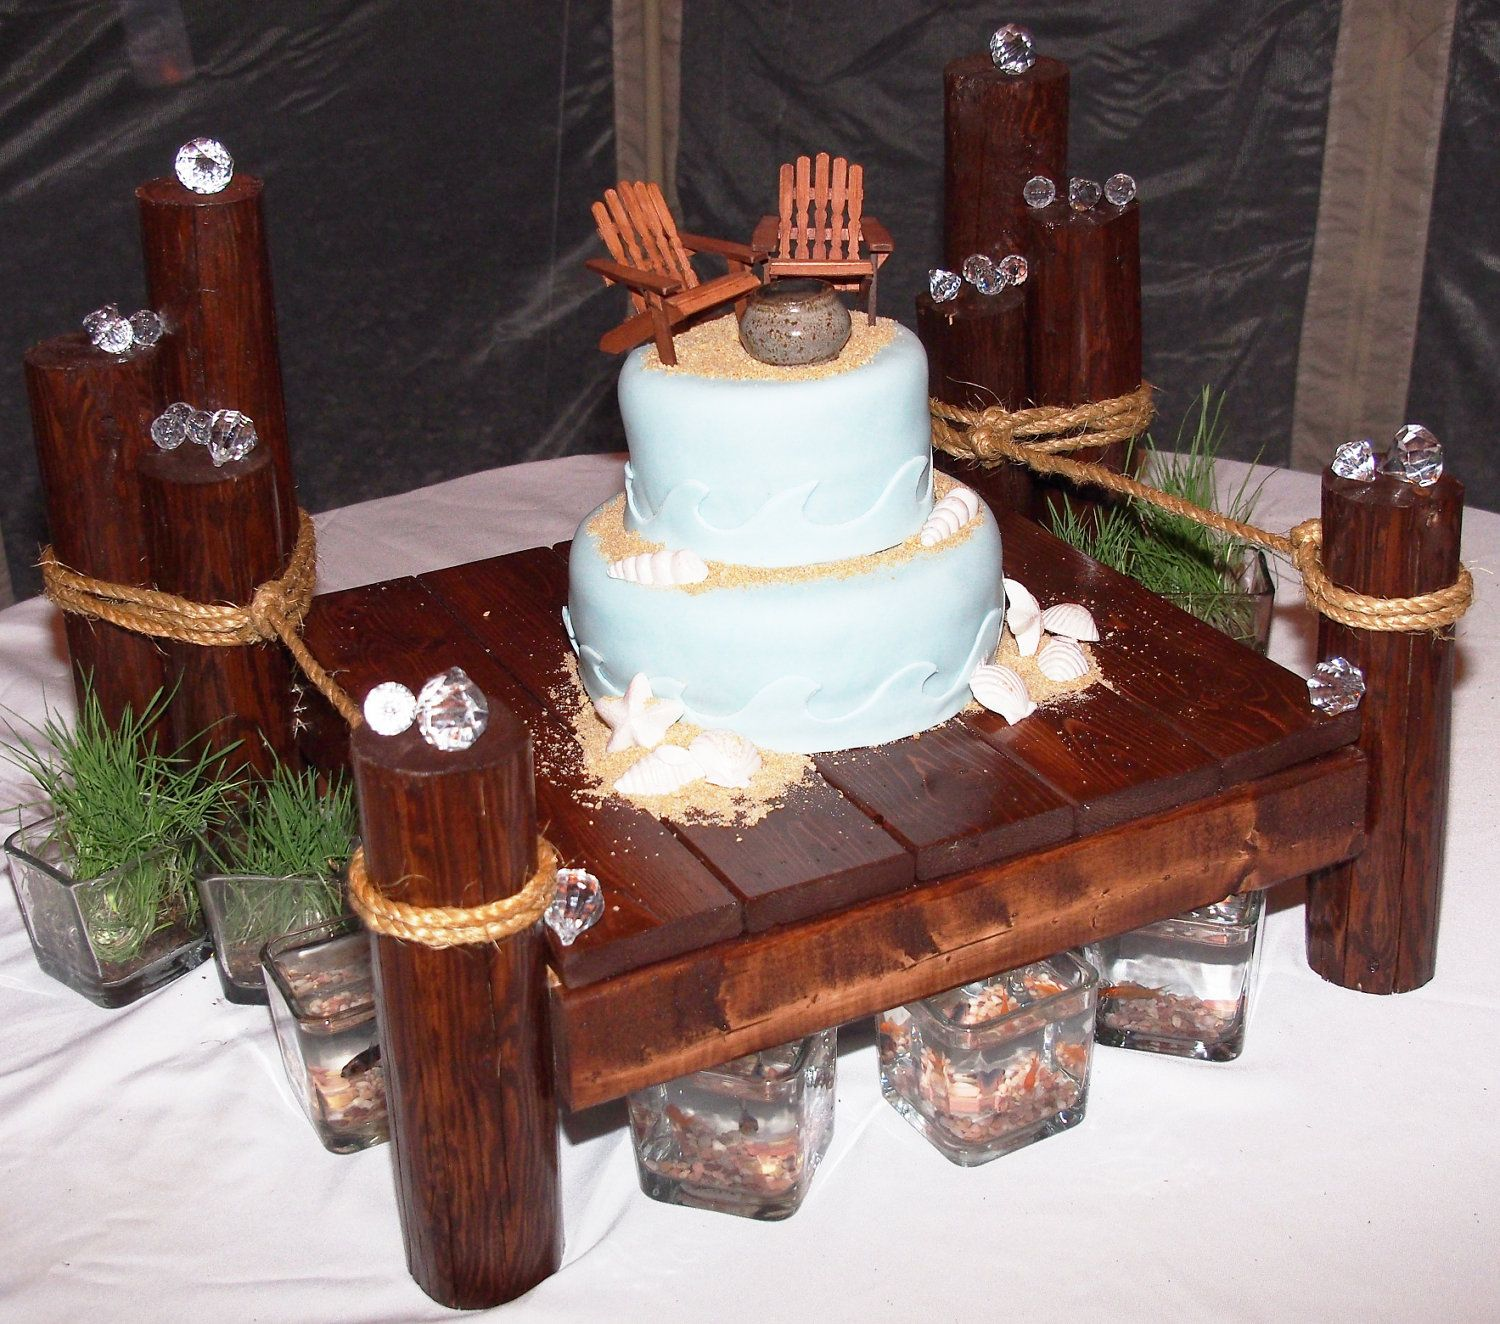 Pier style cake stand for nautical beach boat and lake theme